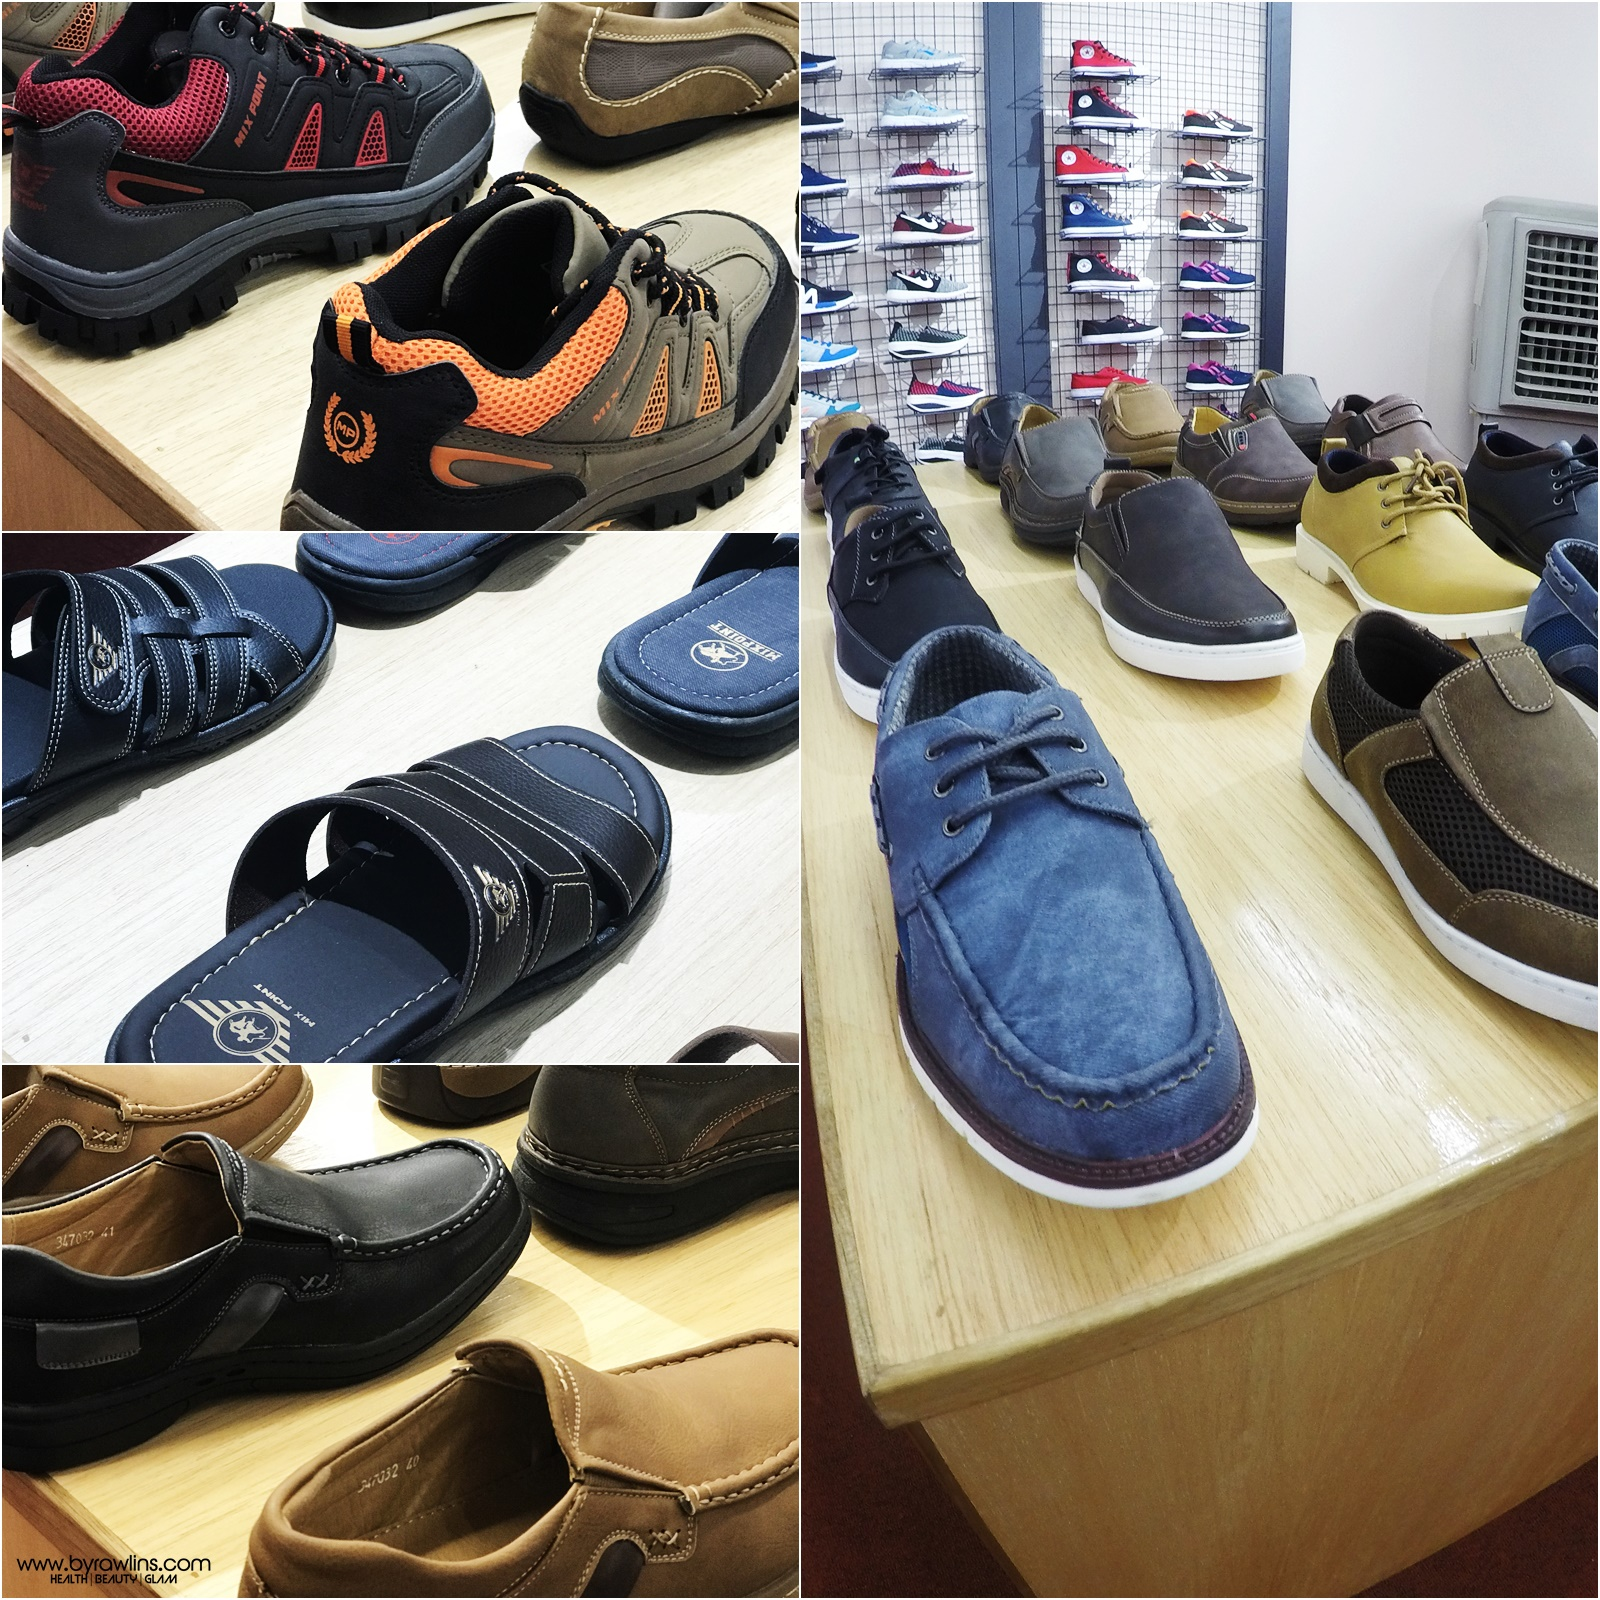 Fashion by Rawlins, Hypershoe, Kedai kasut bangi, KIP Mall, Mix Point, MP Sports, MP Kids, Vetini,